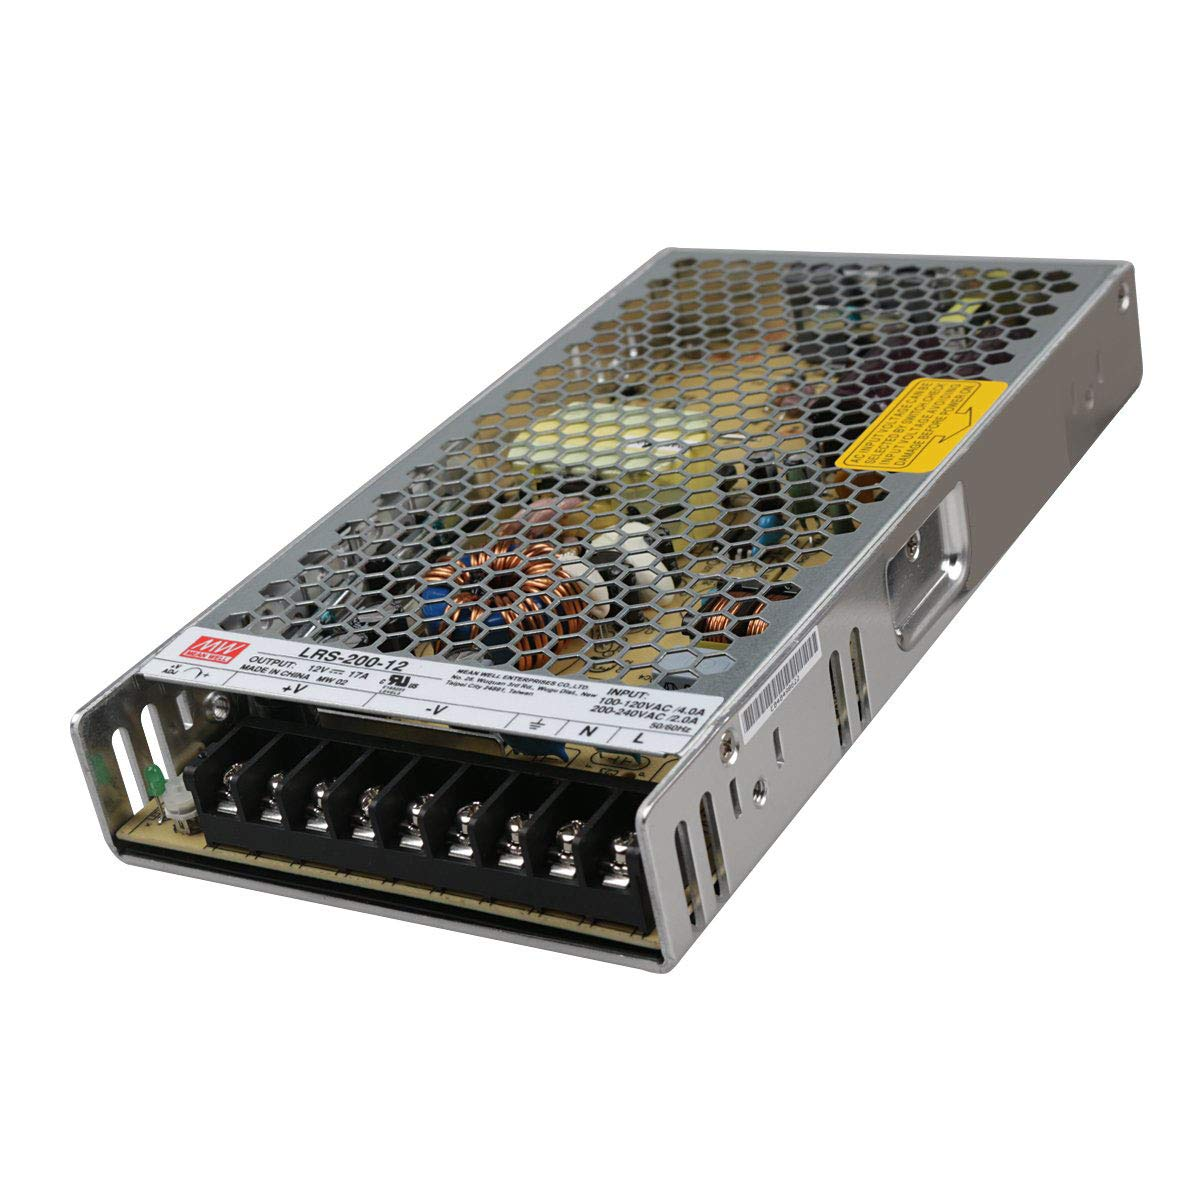 Mean Well LRS-200-12 Switching Power Supply, Single Output, 12V, 17A, 200W, 8.5